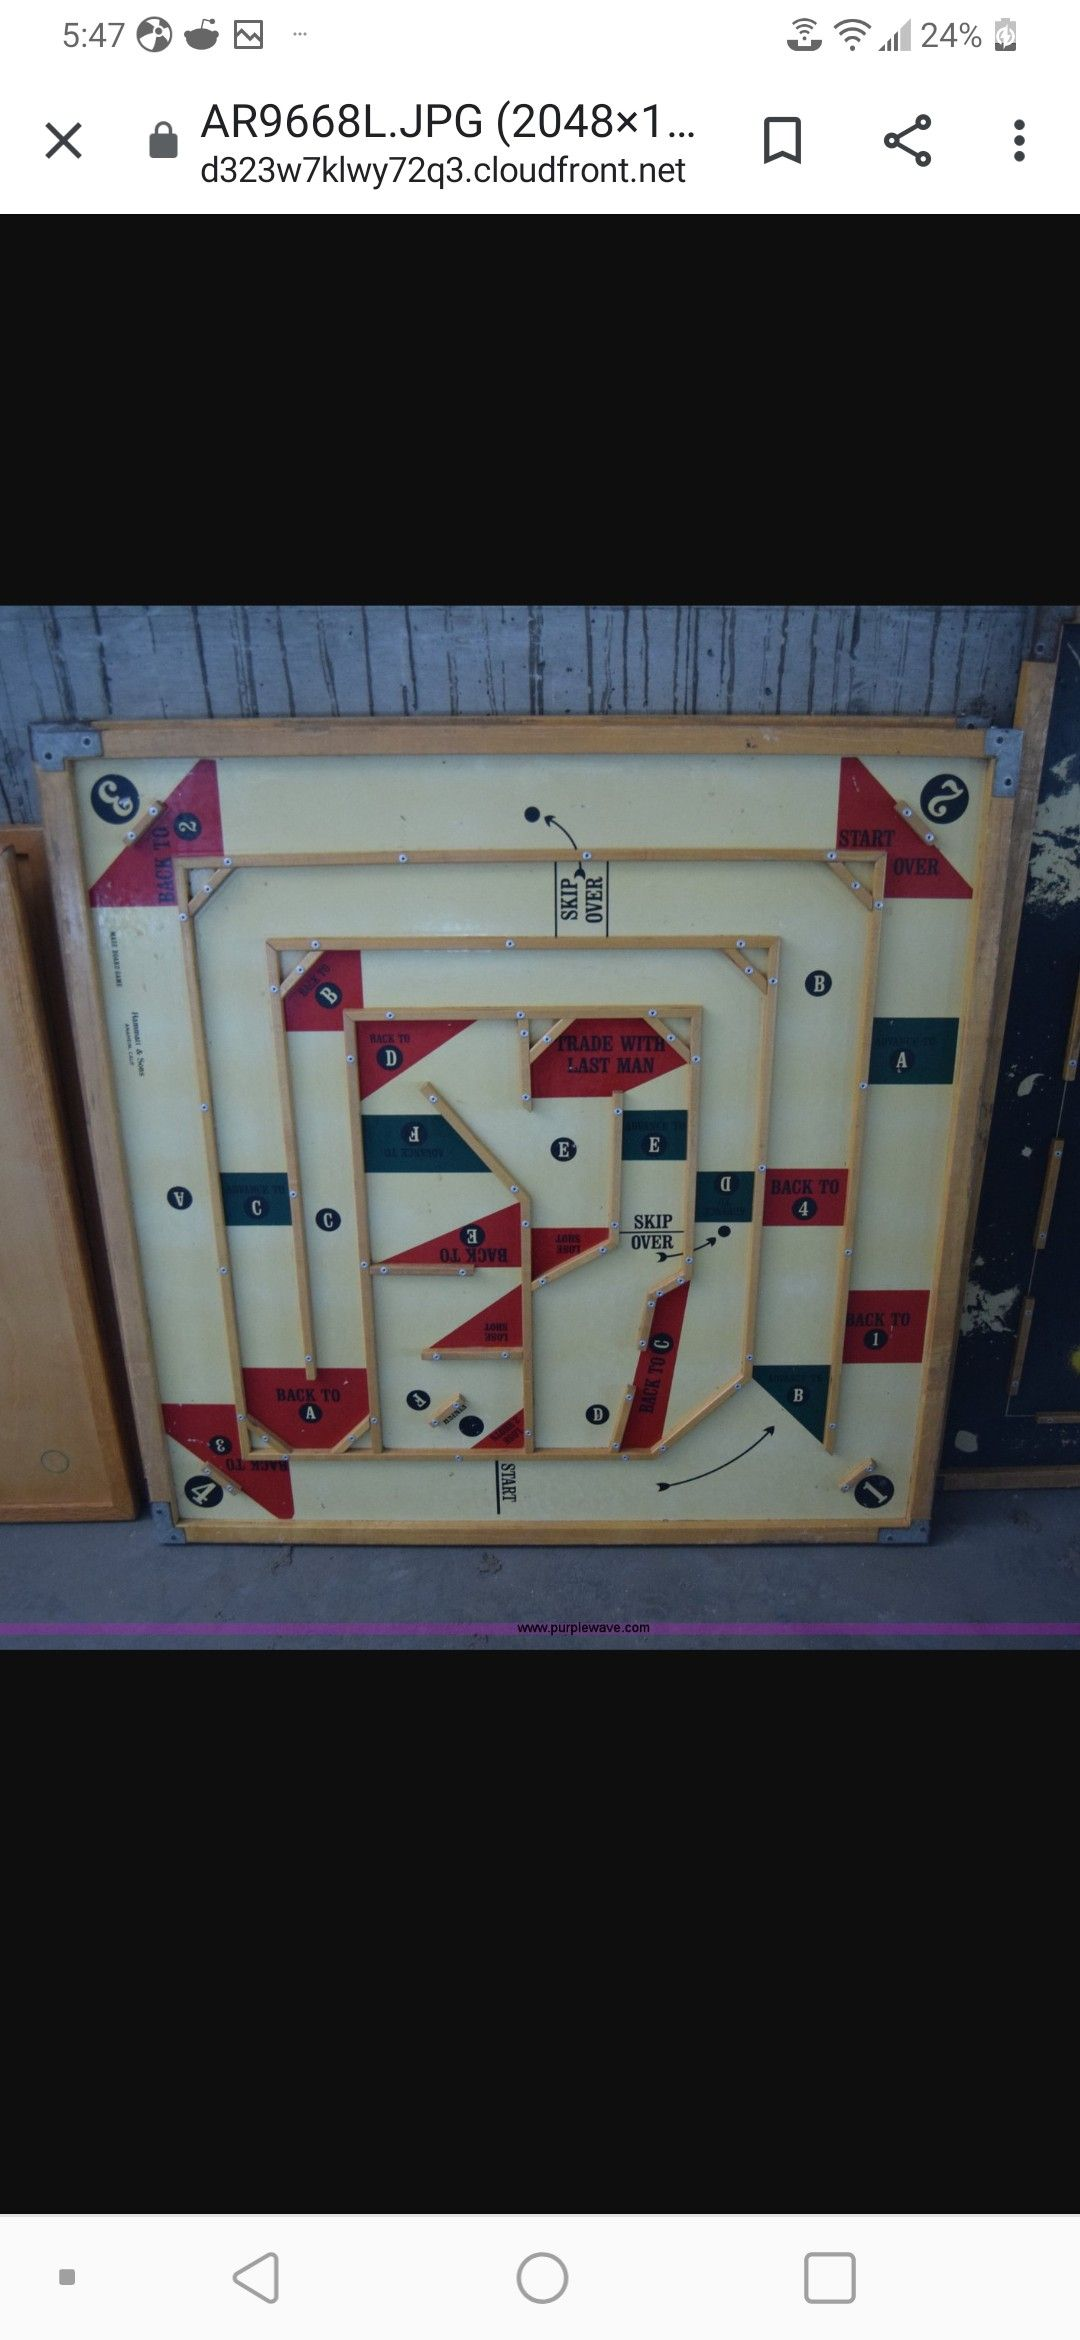 Pin on old school carrom and wooden skill board games